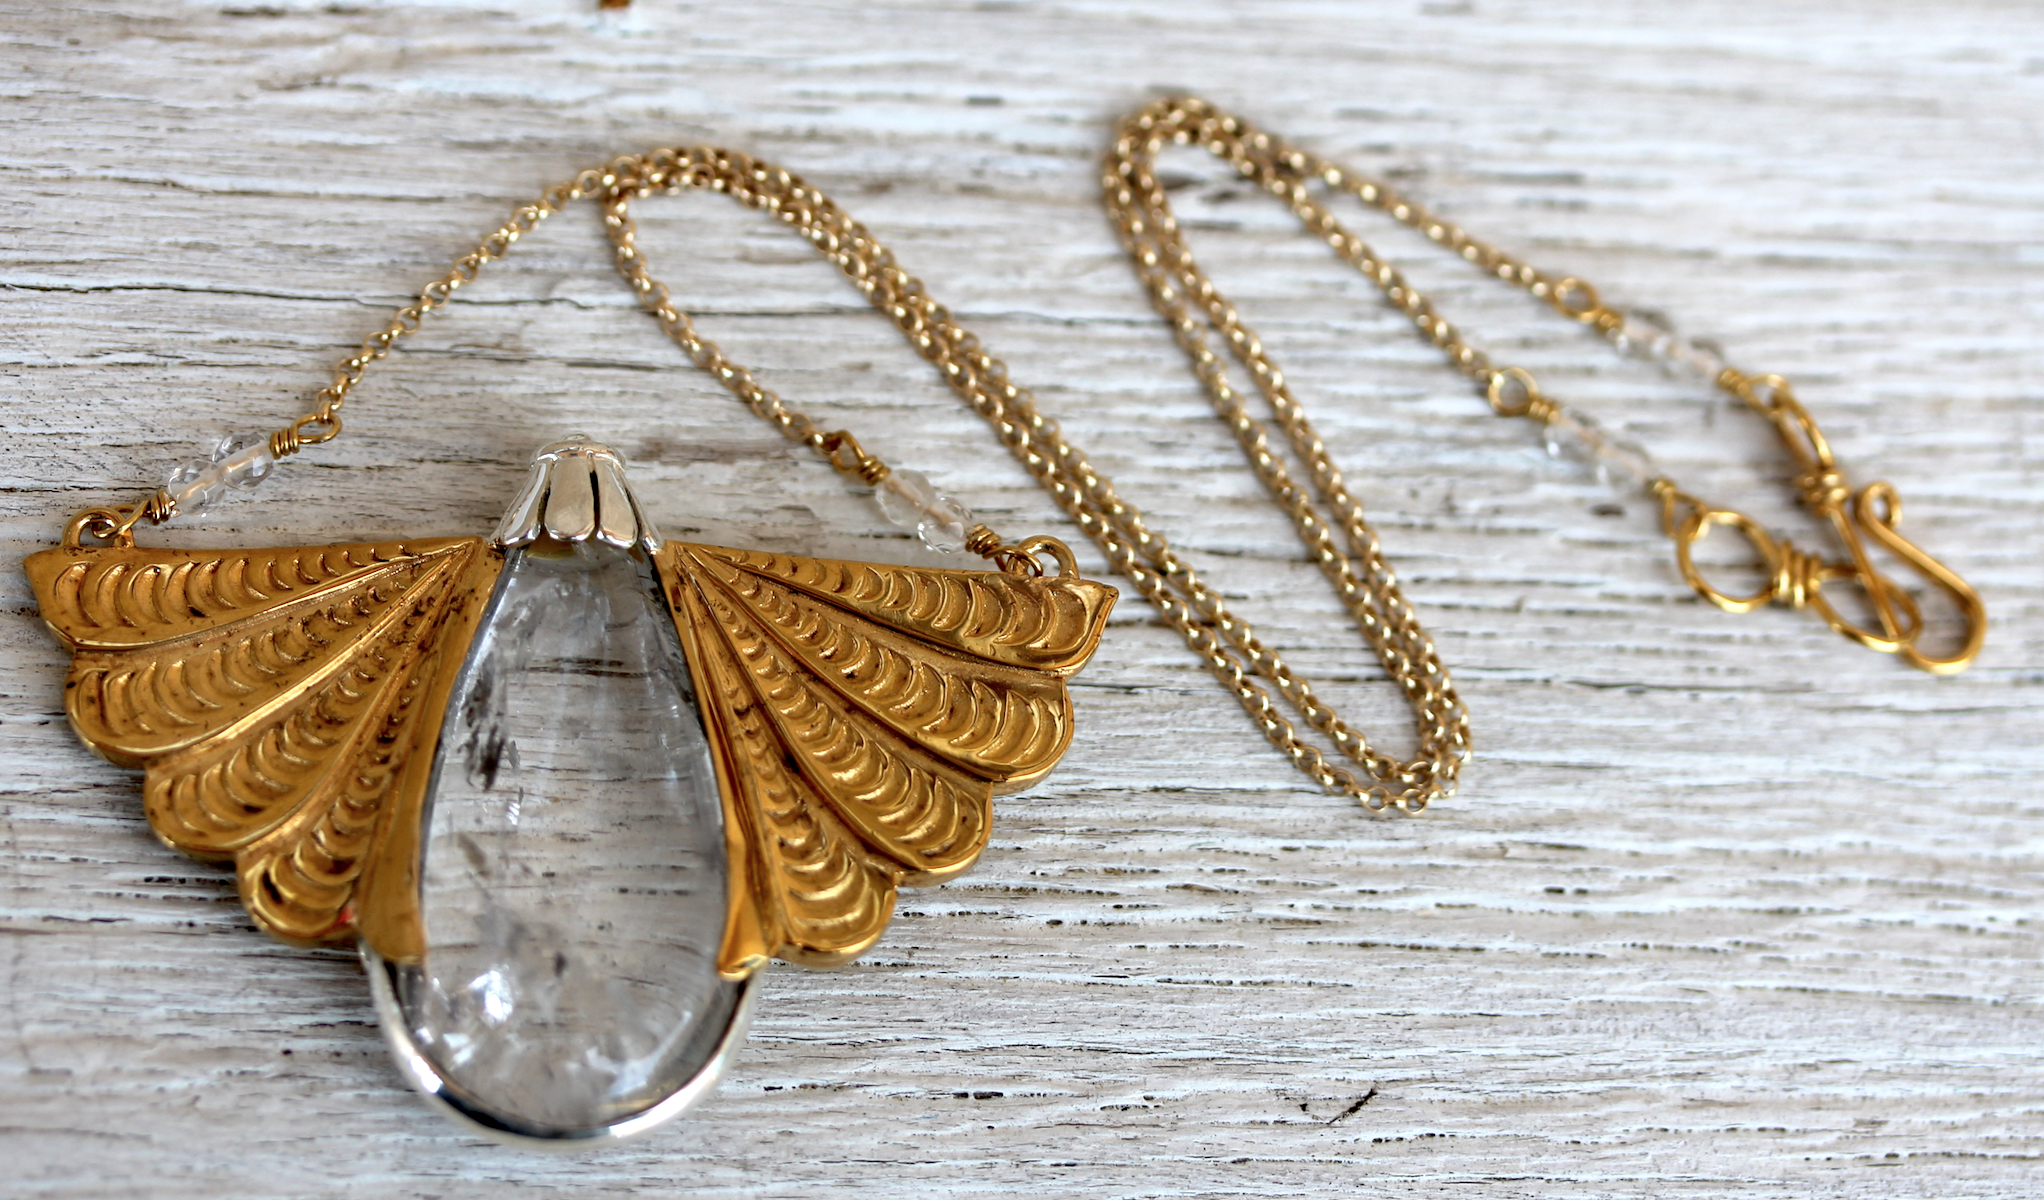 necklace disk pendant winged products jean burgers egyptian jewellery